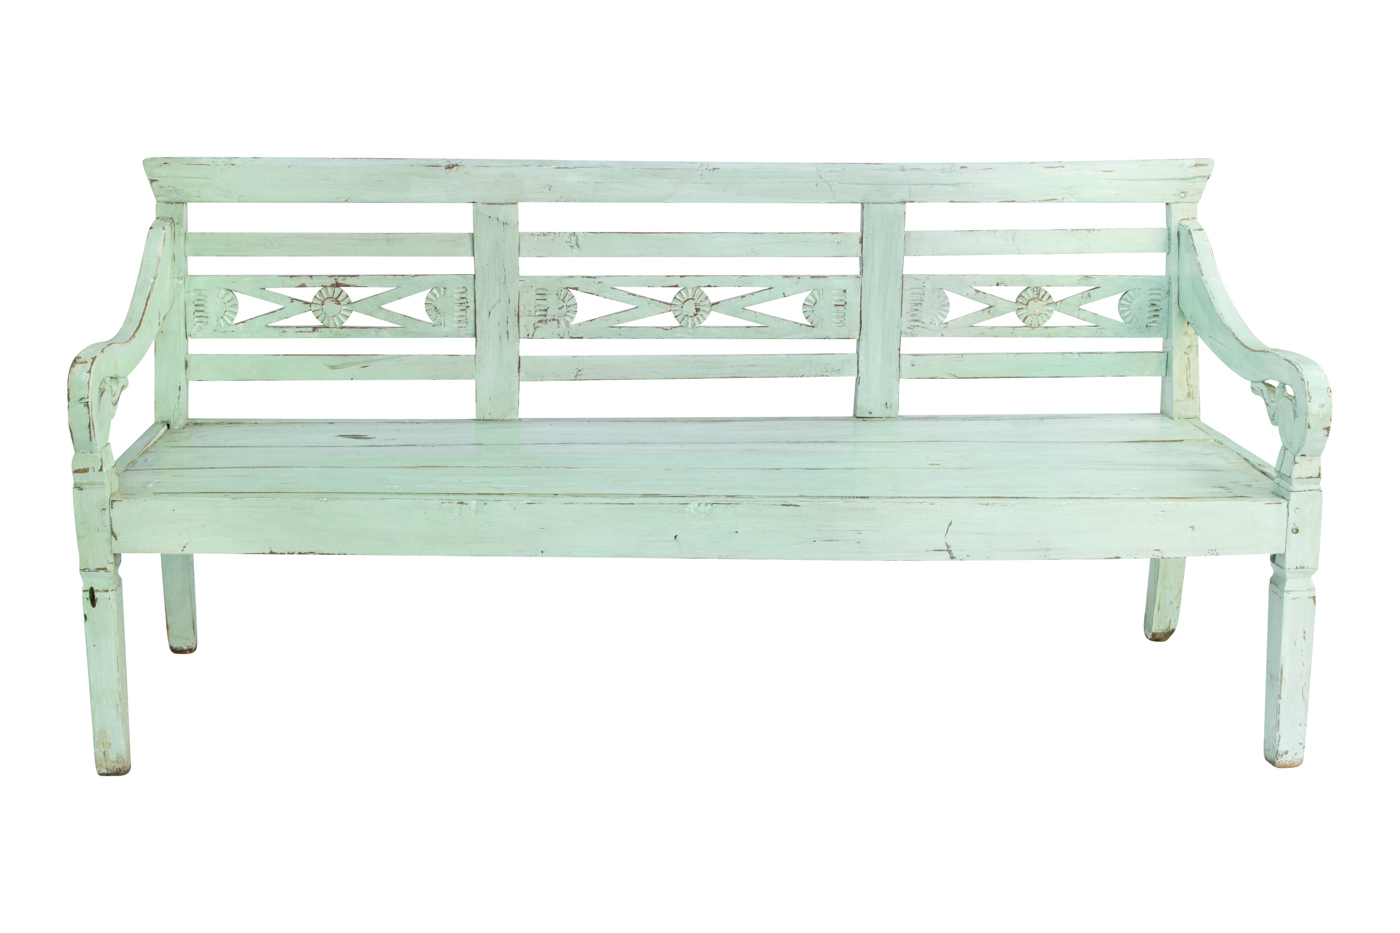 Balinese bench carved in light green wood, 187 Cm